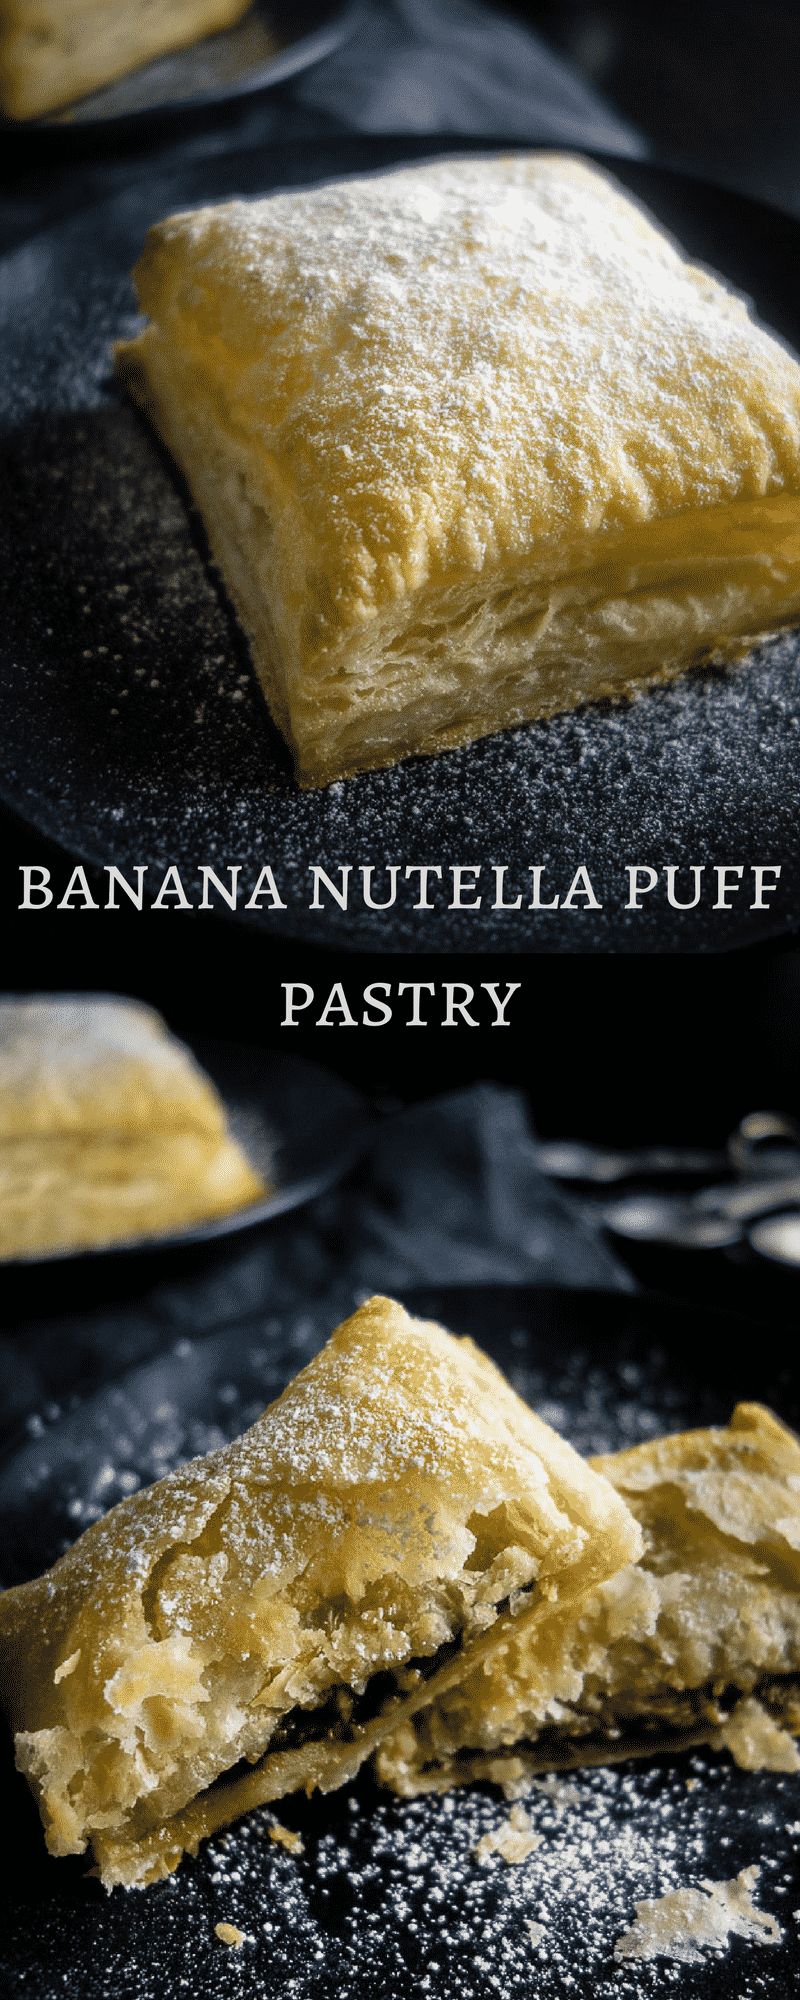 Filled with creamy Nutella, sweet, ripe bananas and baked until the puff pastry is browned and warm and gooey on the inside, these Banana Nutella Pastries are super easy to make.nutella puff pastry | nutella pastries | banana pastries | puff pastry desserts | 3 ingredients desserts | banana desserts | nutella desserts | banana nutella puff pastry | banana nutella hand pies | banana nutella hot pocketss